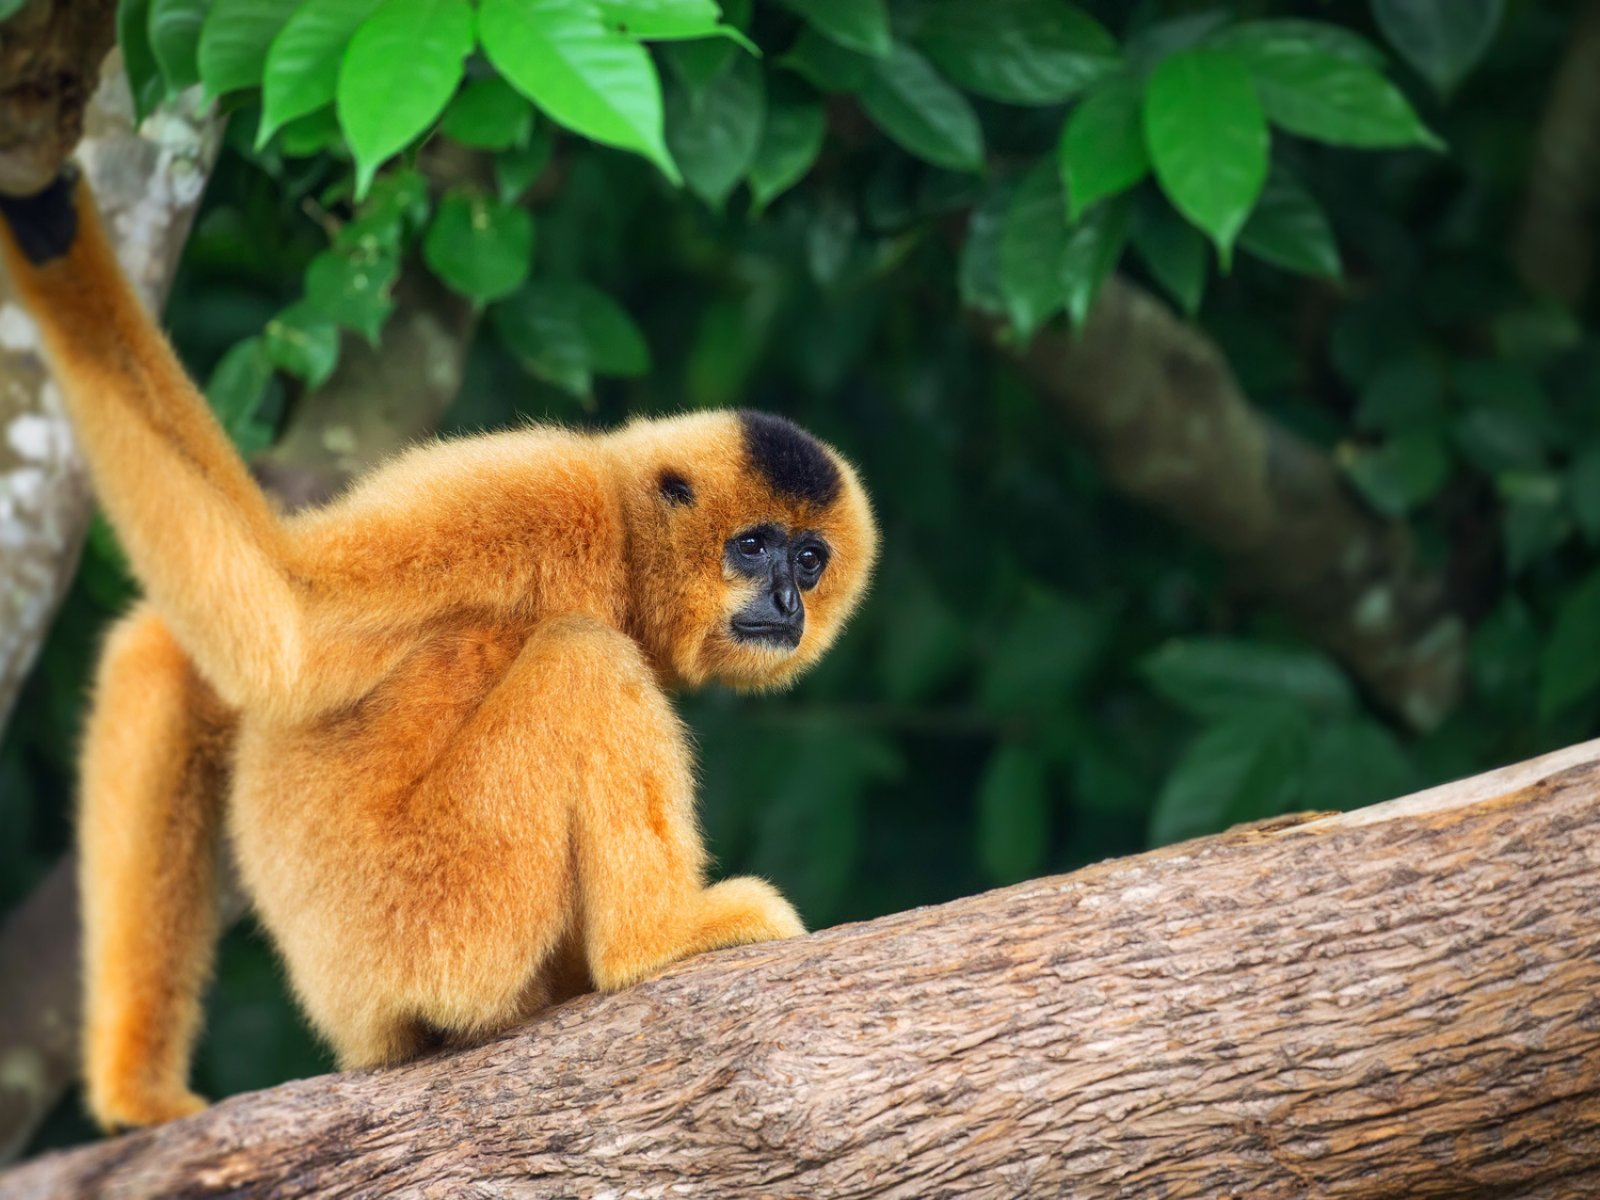 How to look After Gibbons in Phuket